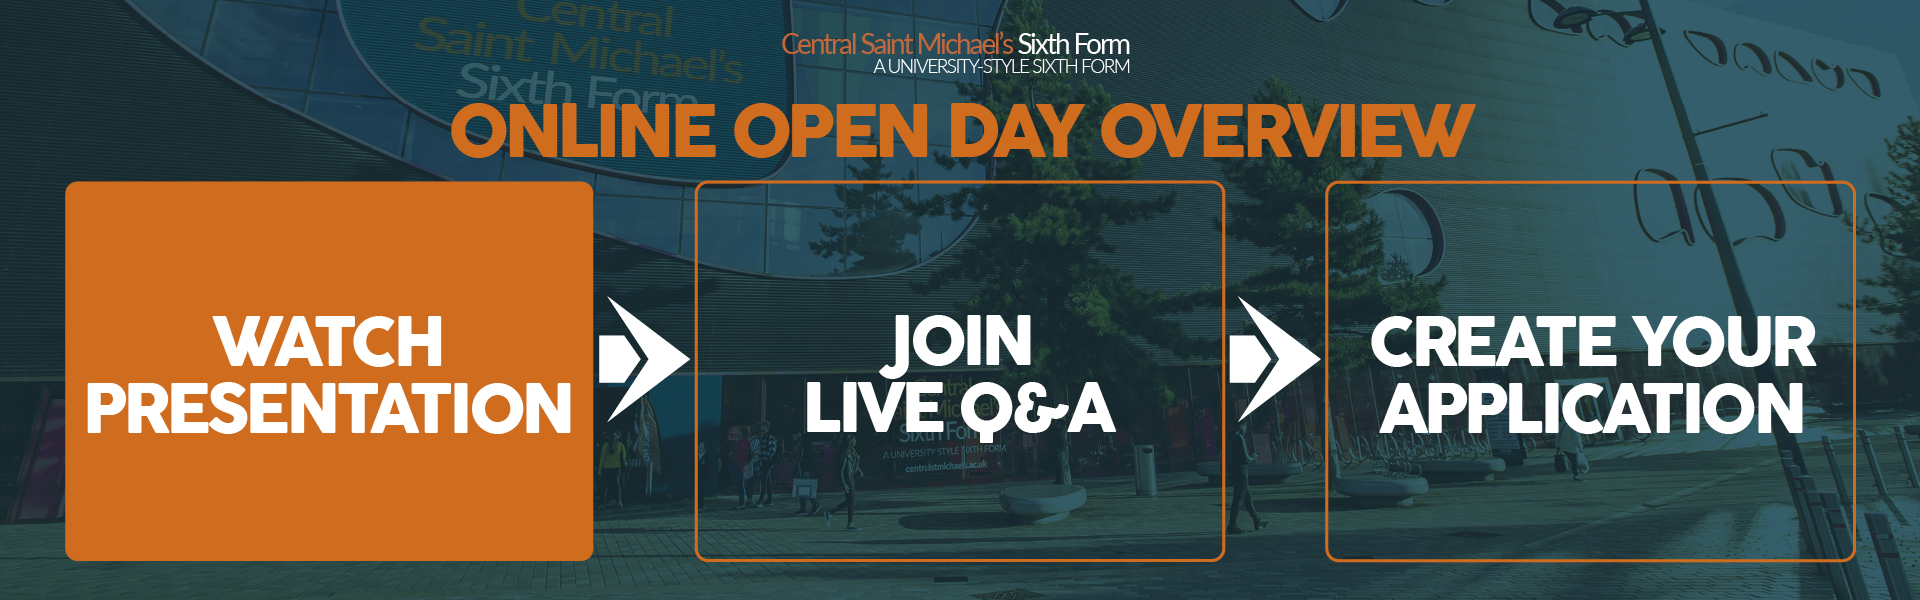 Online Open Day Overview banner encouraging attendees to watch a presentation, join the live Q&A session and to create an application